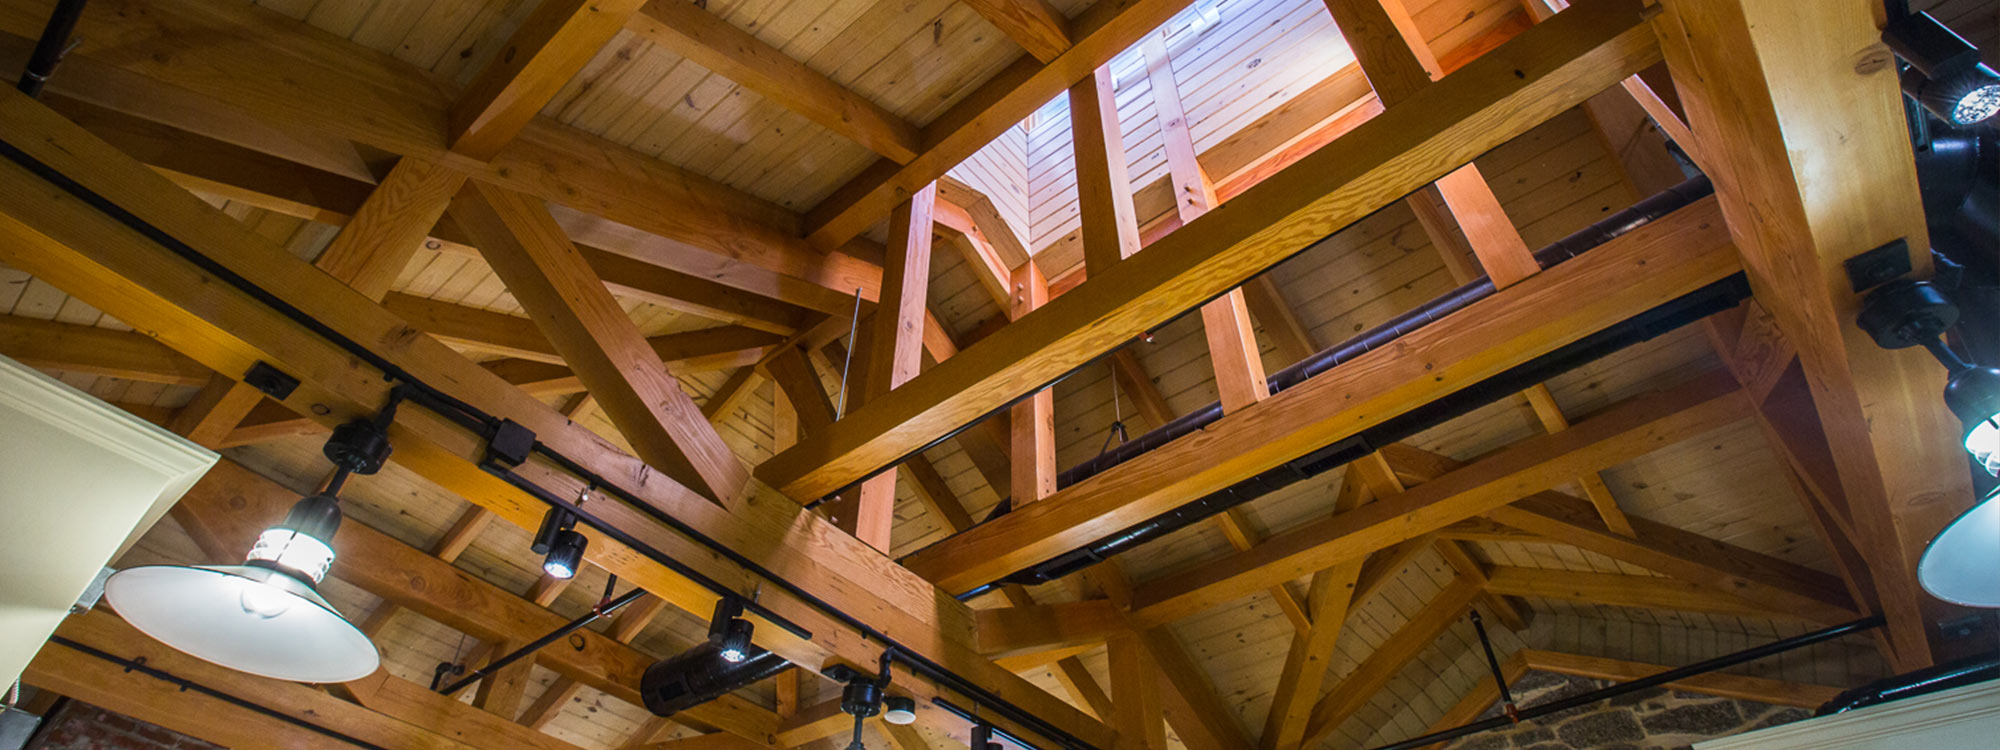 Swell Faqs Mid Atlantic Timberframes Home Interior And Landscaping Eliaenasavecom